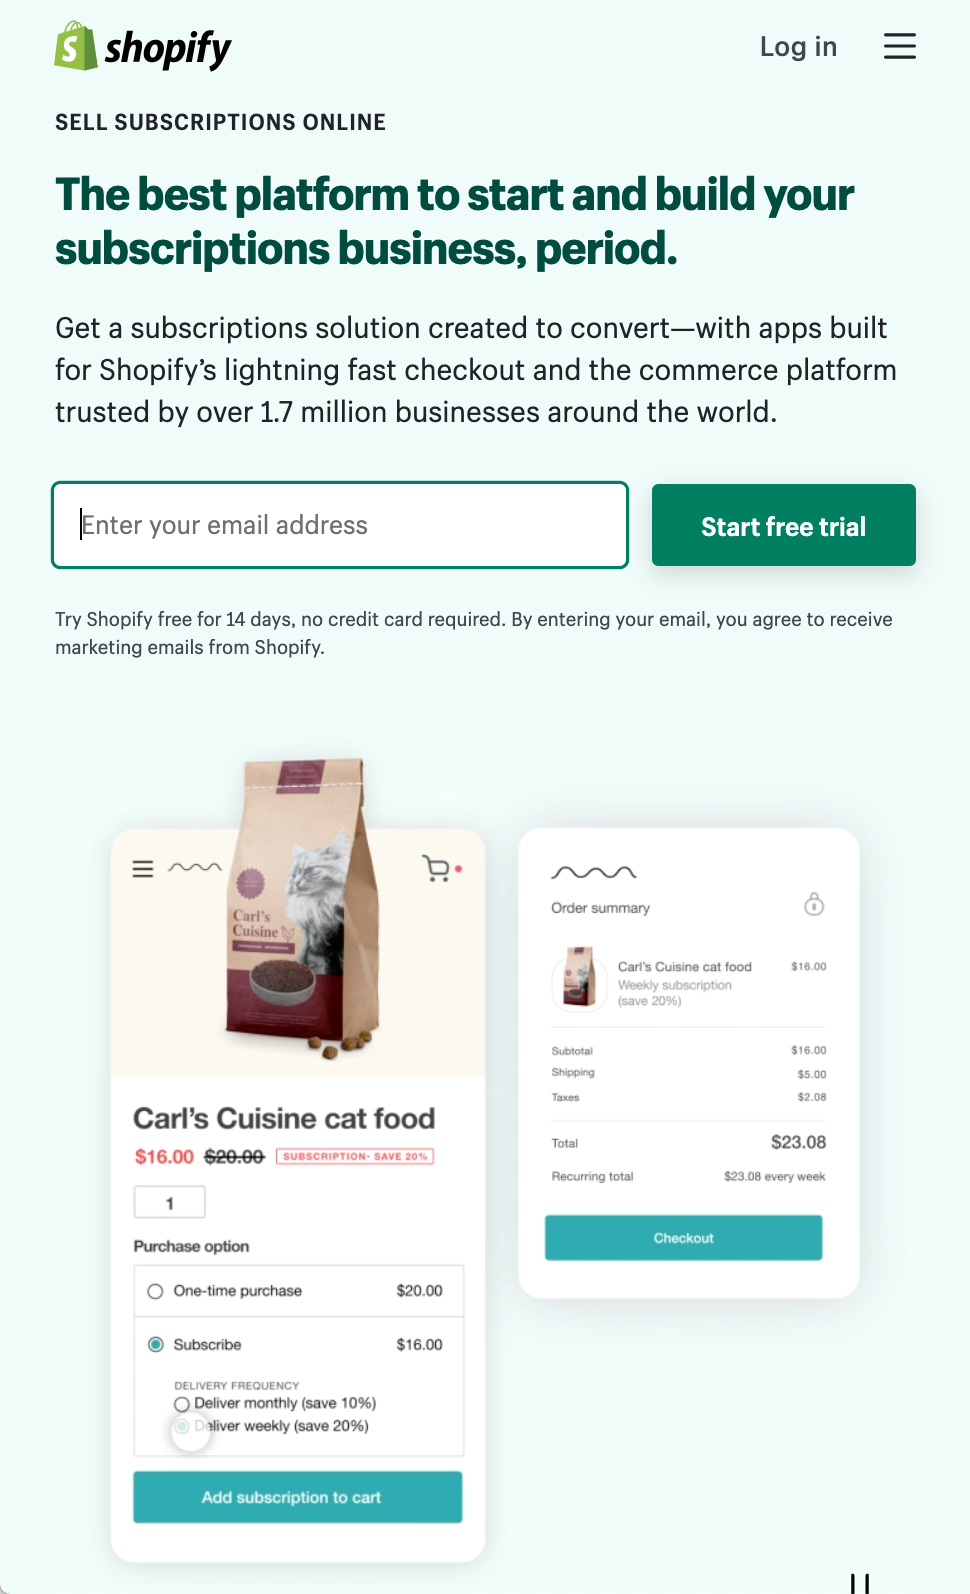 Starting a Small Business From Home Ideas: Shopify Subscription Management